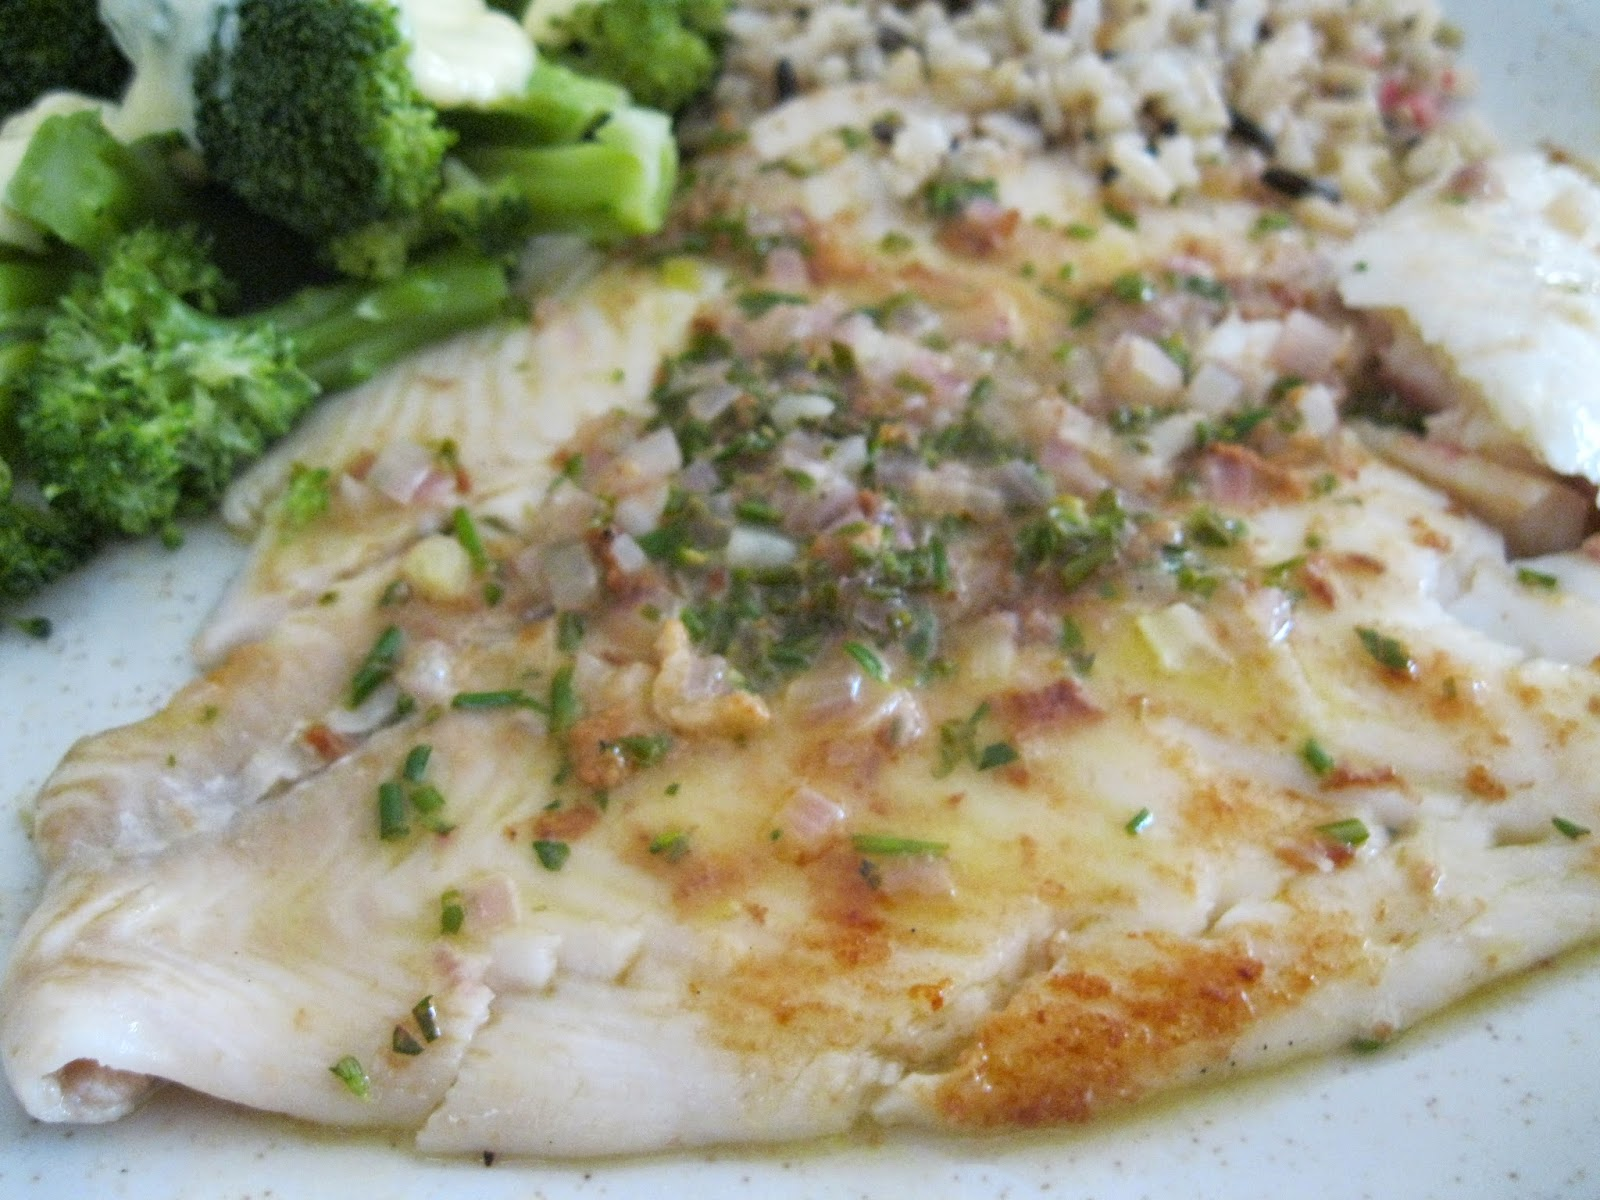 Kevin Mac Cooking: Sautéed Petrale Sole in Herb Butter Sauce